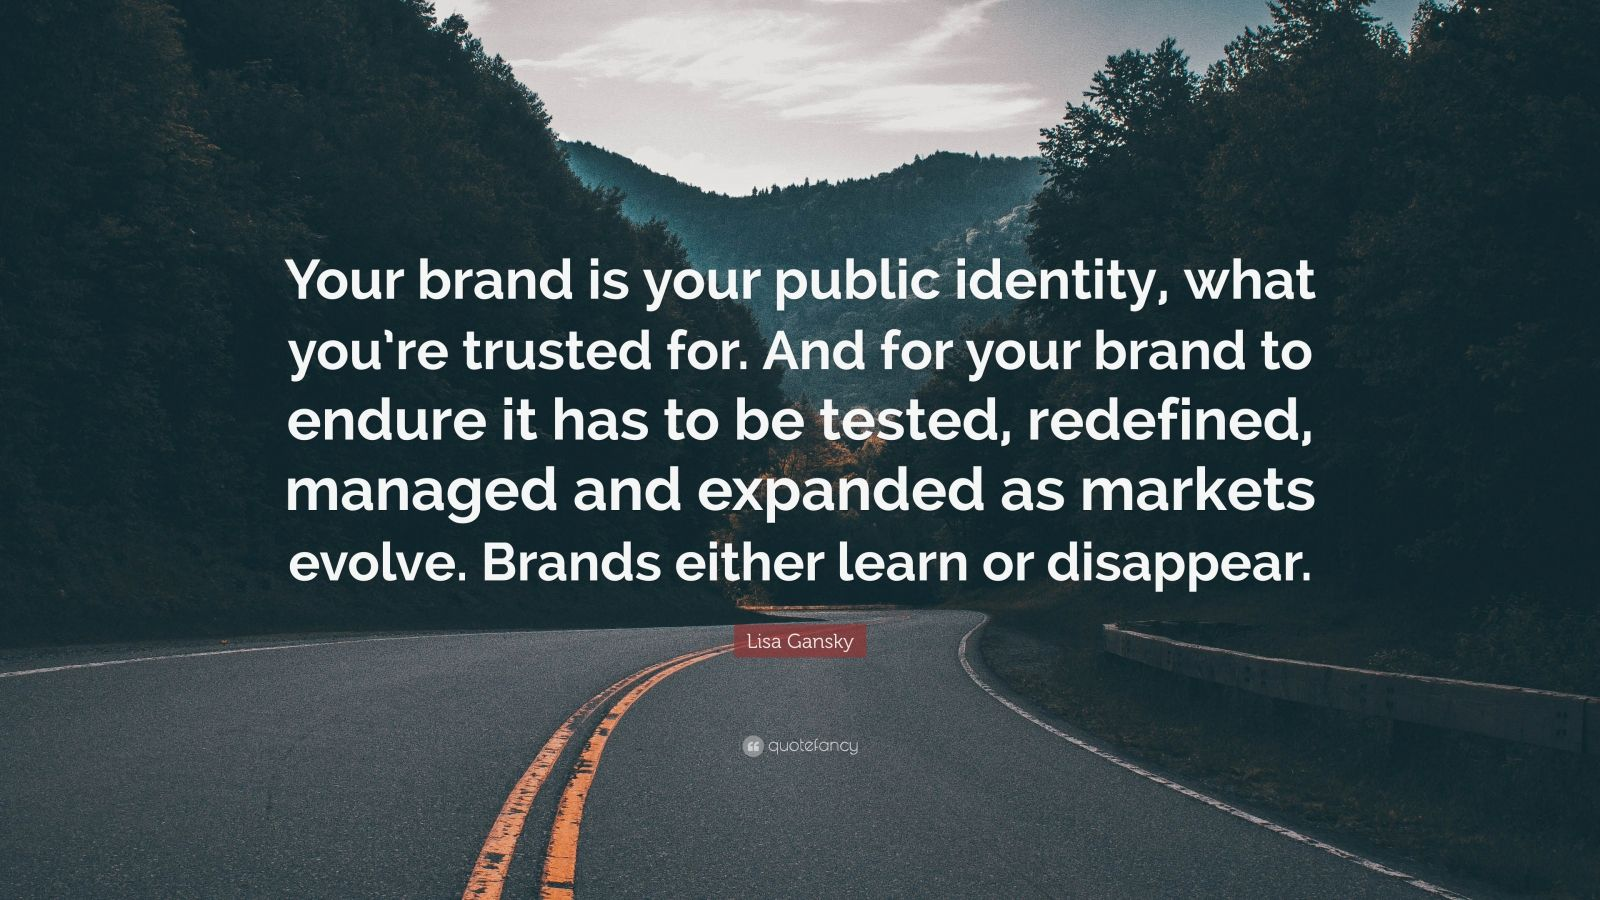 """Lisa Gansky Quote: """"Your brand is your public identity, what you're trusted for. And for your brand to endure it has to be tested, redefined, managed and expanded as markets evolve. Brands either learn or disappear."""""""